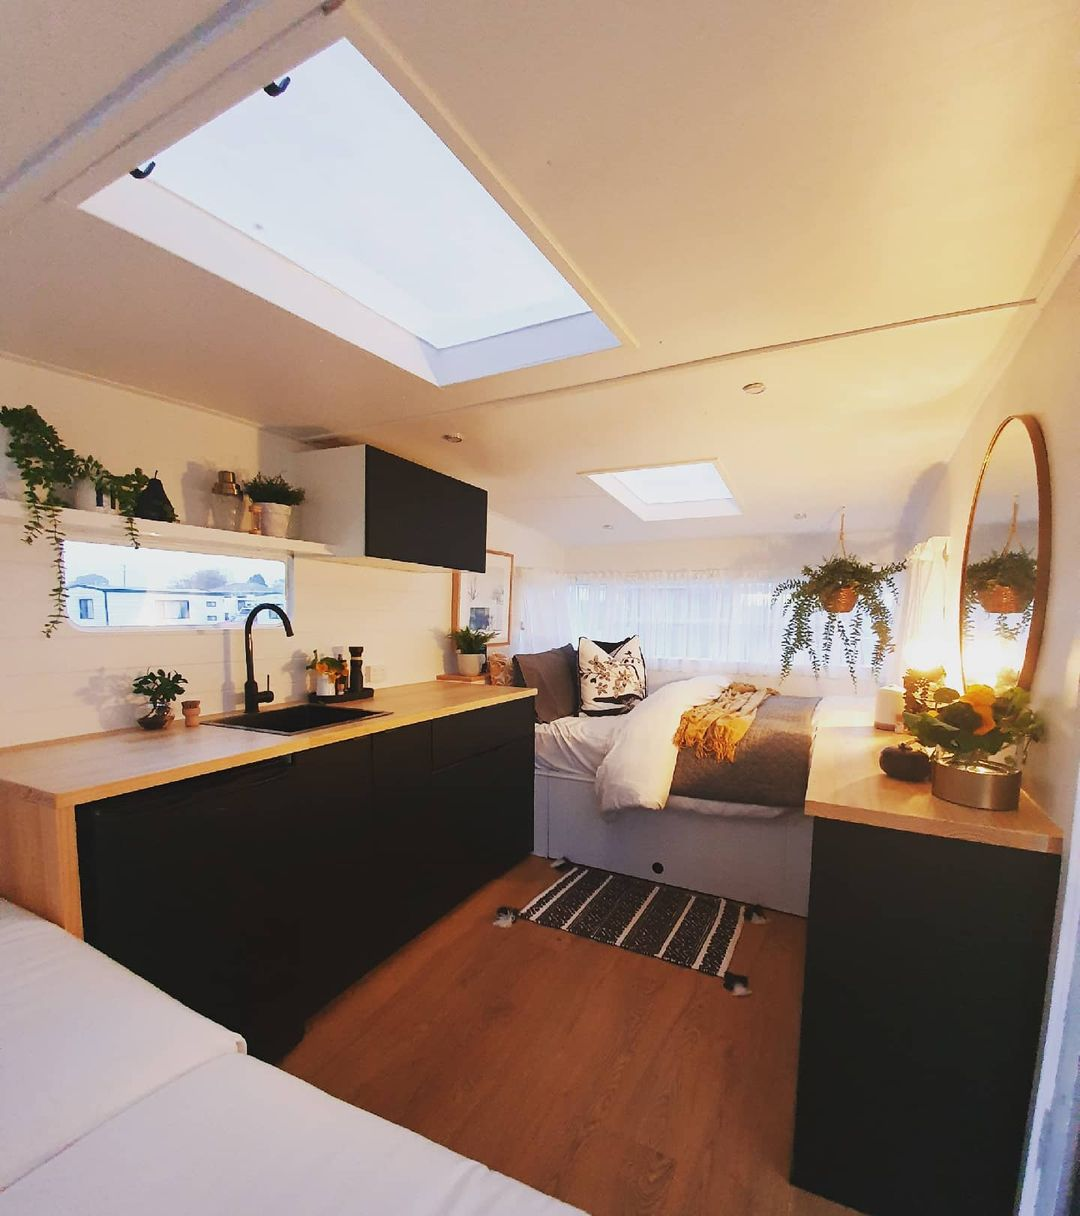 Interior view of a remodeled travel trailer showing the bed and kitchen area.